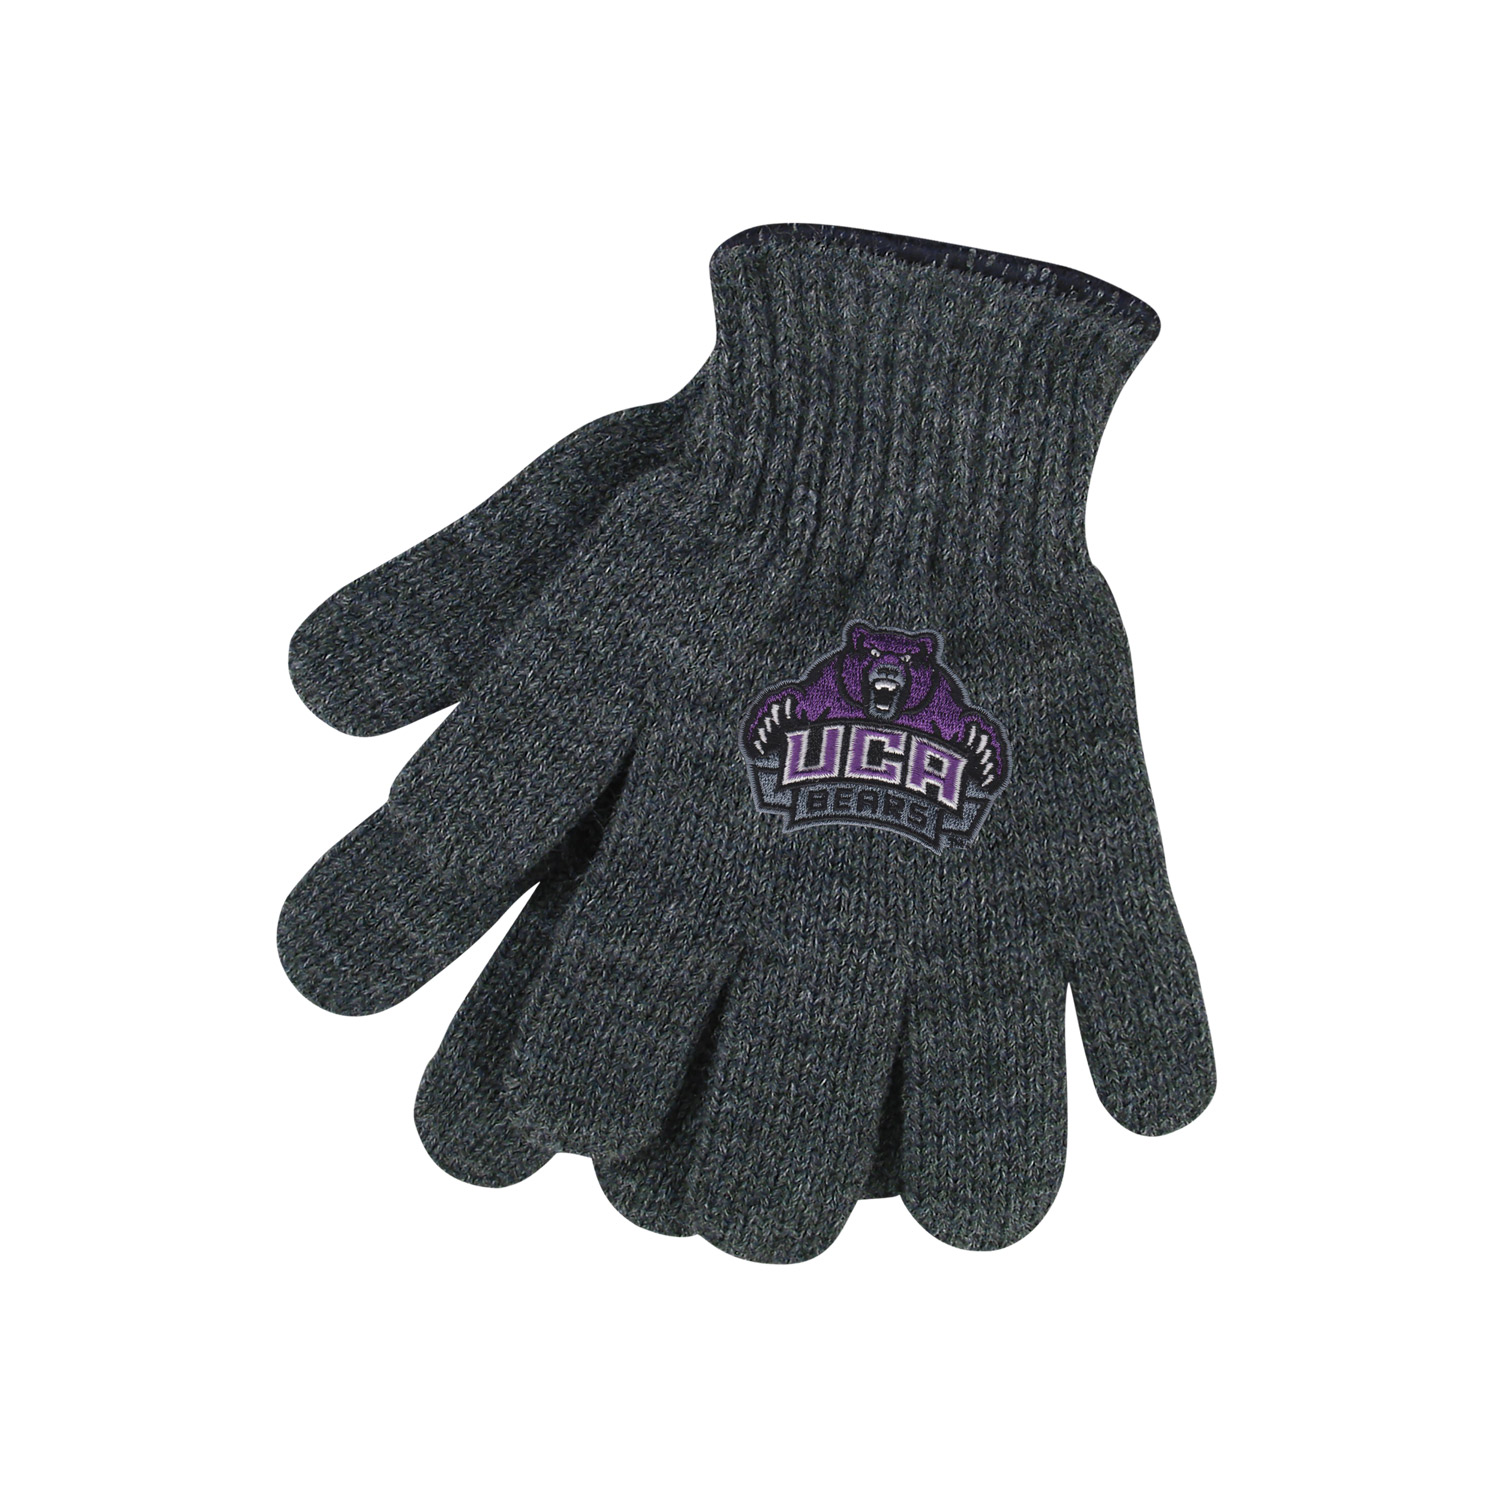 Tailgate Knit Gloves